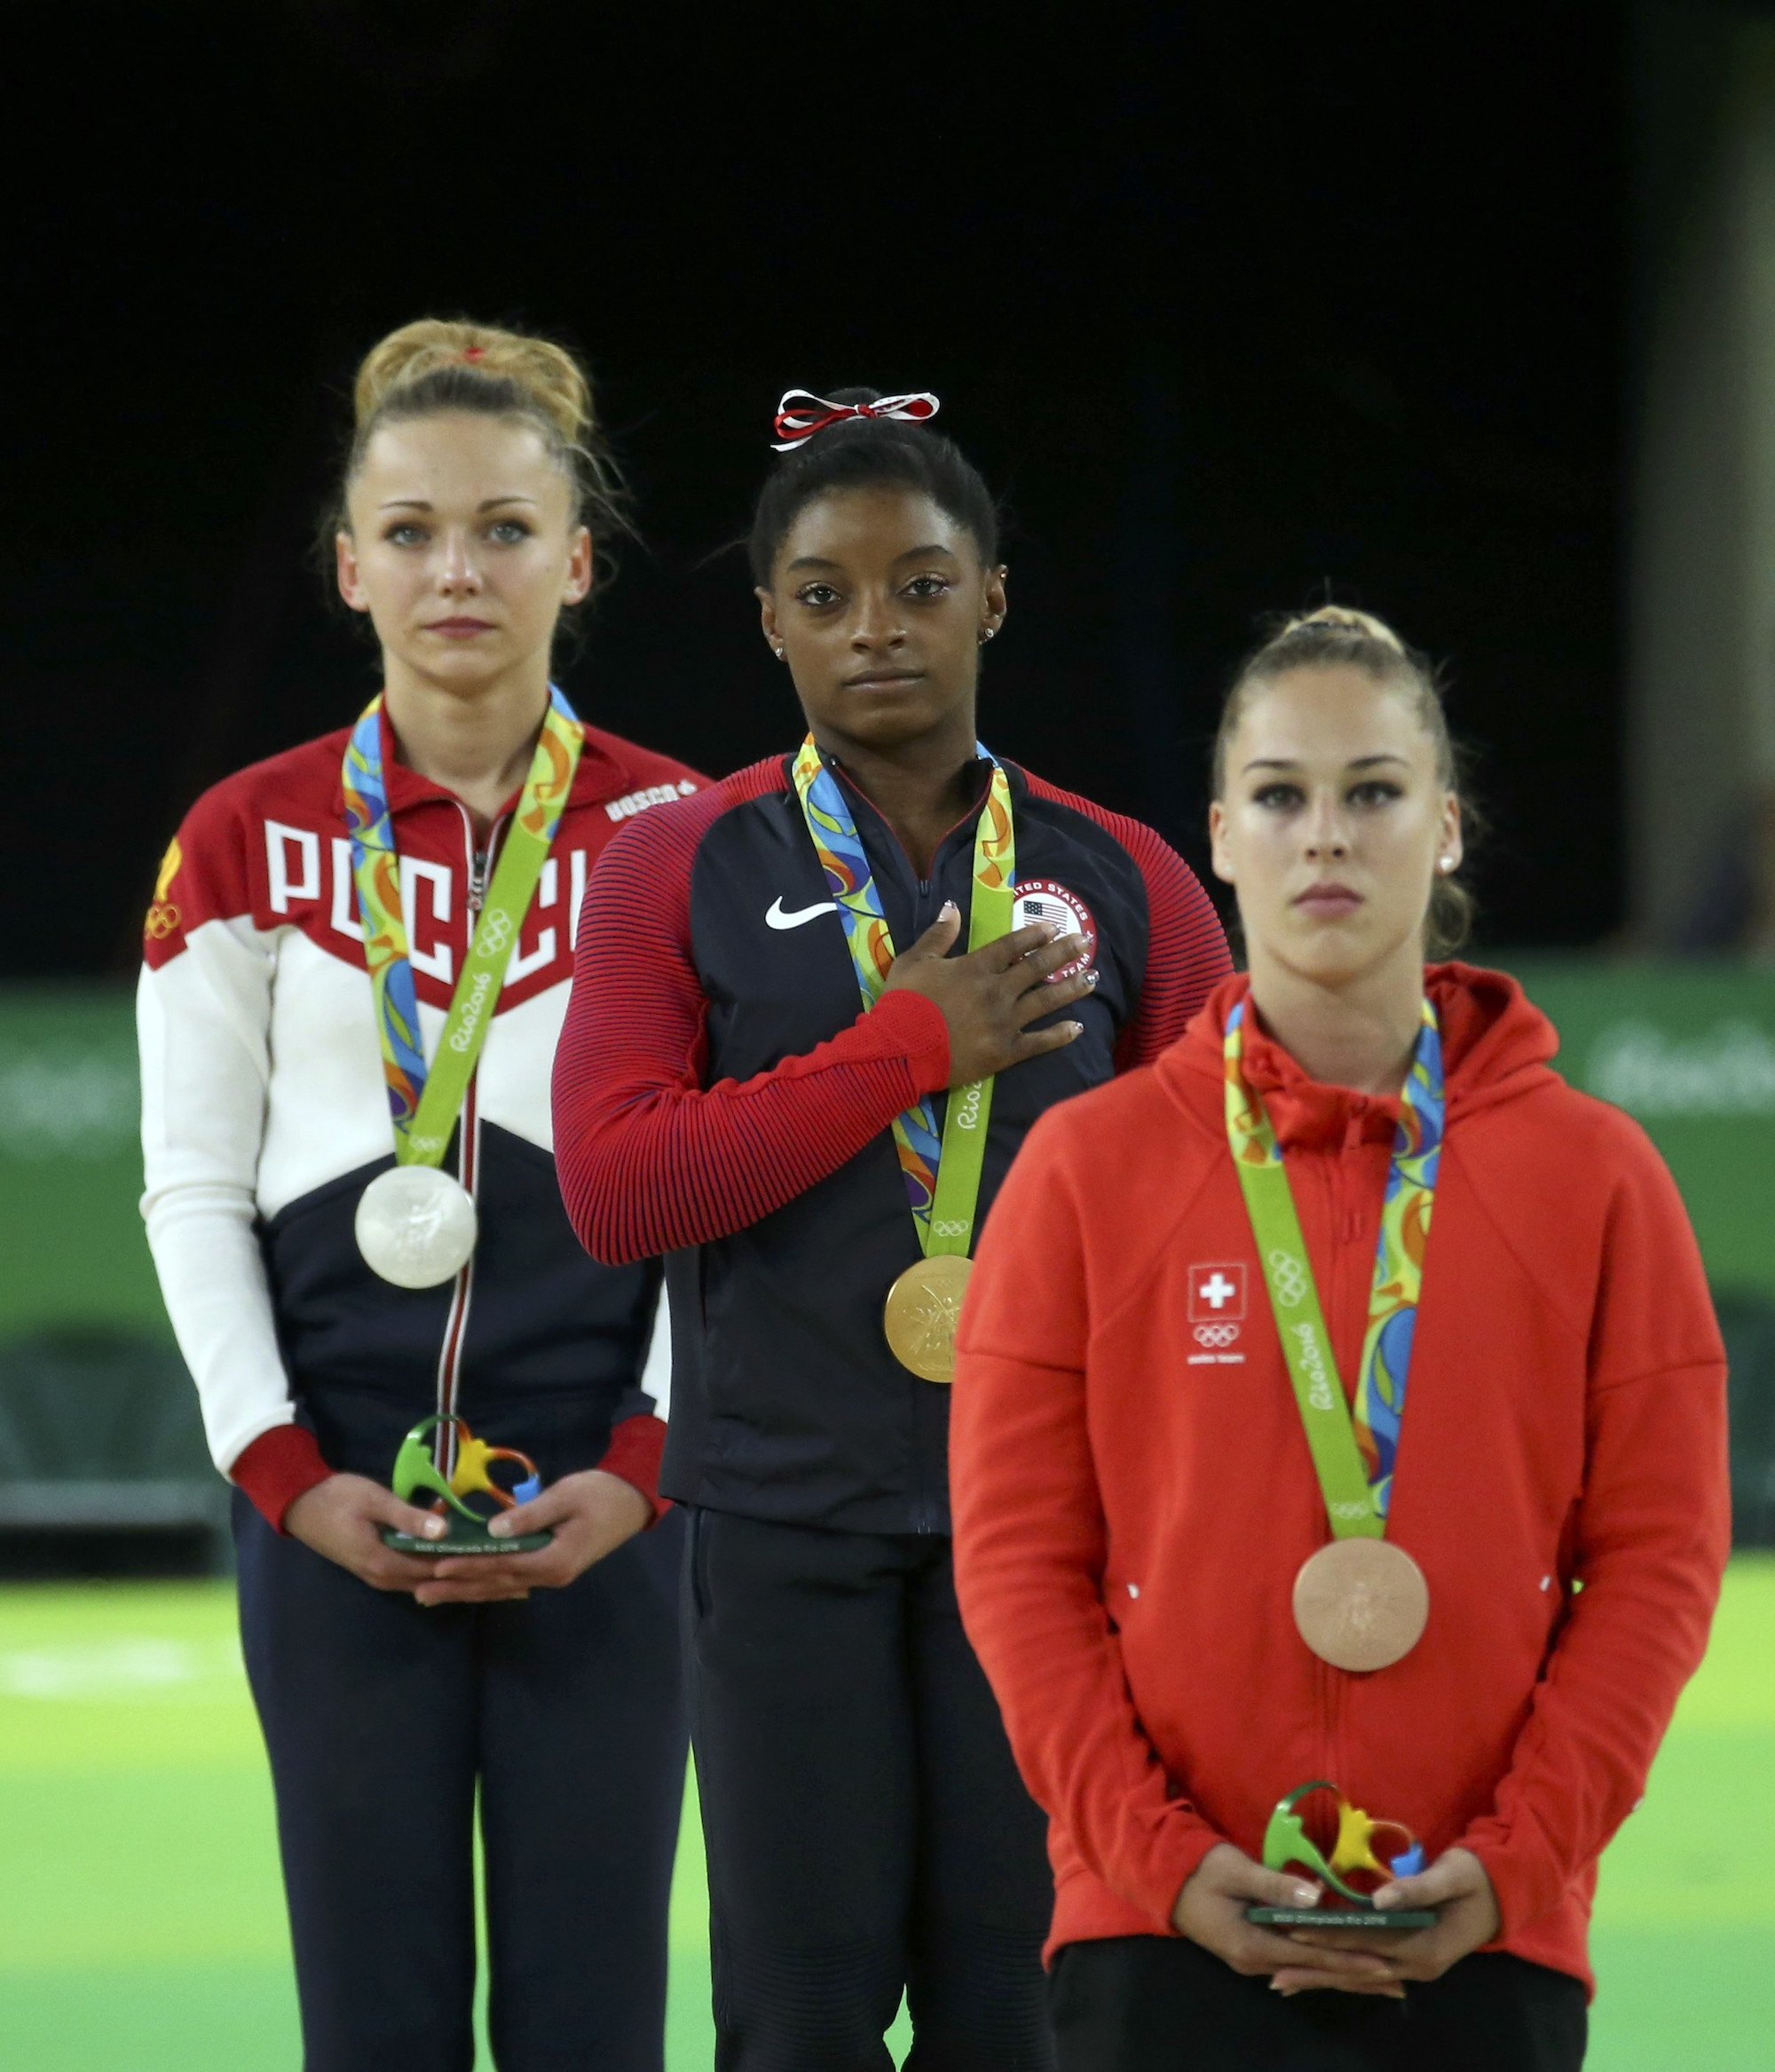 2016 Rio Olympics - Artistic Gymnastics - Victory Ceremony - Women's Vault Victory Ceremony - Rio Olympic Arena - Rio de Janeiro, Brazil - 14/08/2016. Simone Biles (USA) of USA, Giulia Steingruber (SUI) of Switzerland and Maria Paseka (RUS) of Russia listen to the USA anthem. REUTERS/Ruben Sprich FOR EDITORIAL USE ONLY. NOT FOR SALE FOR MARKETING OR ADVERTISING CAMPAIGNS.